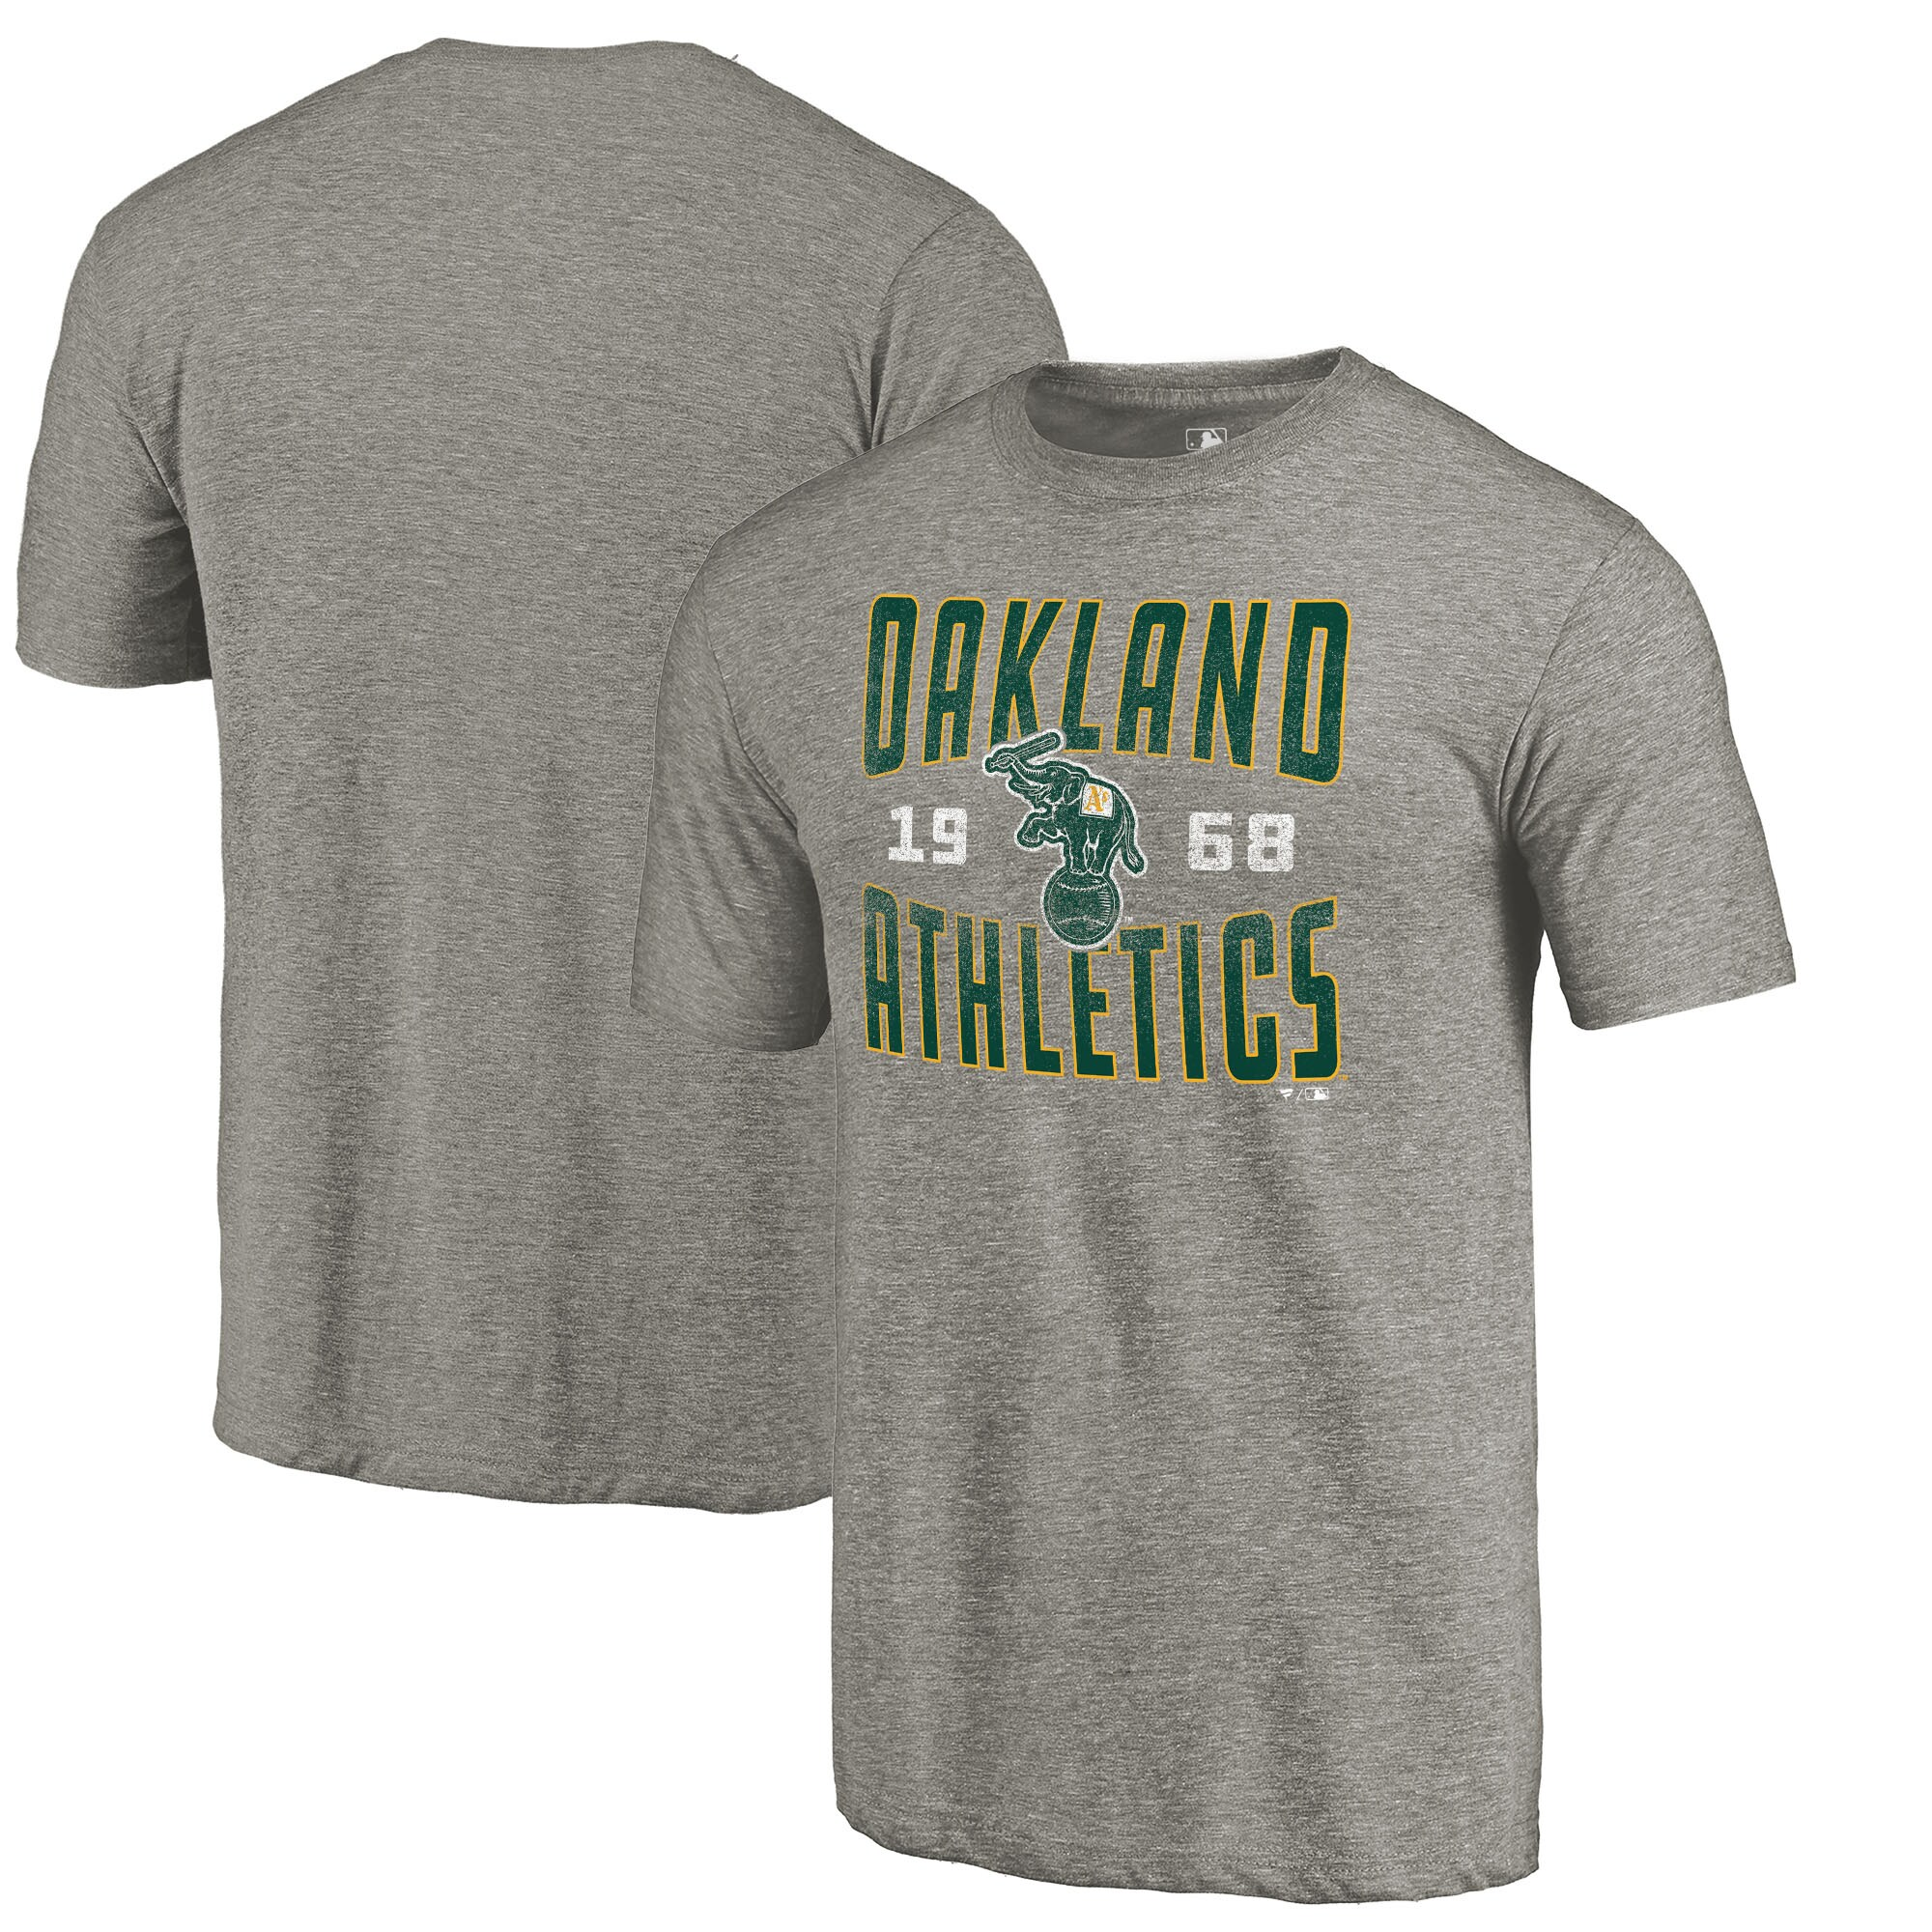 Oakland Athletics Fanatics Branded Cooperstown Collection Antique Stack Tri-Blend T-Shirt - Gray